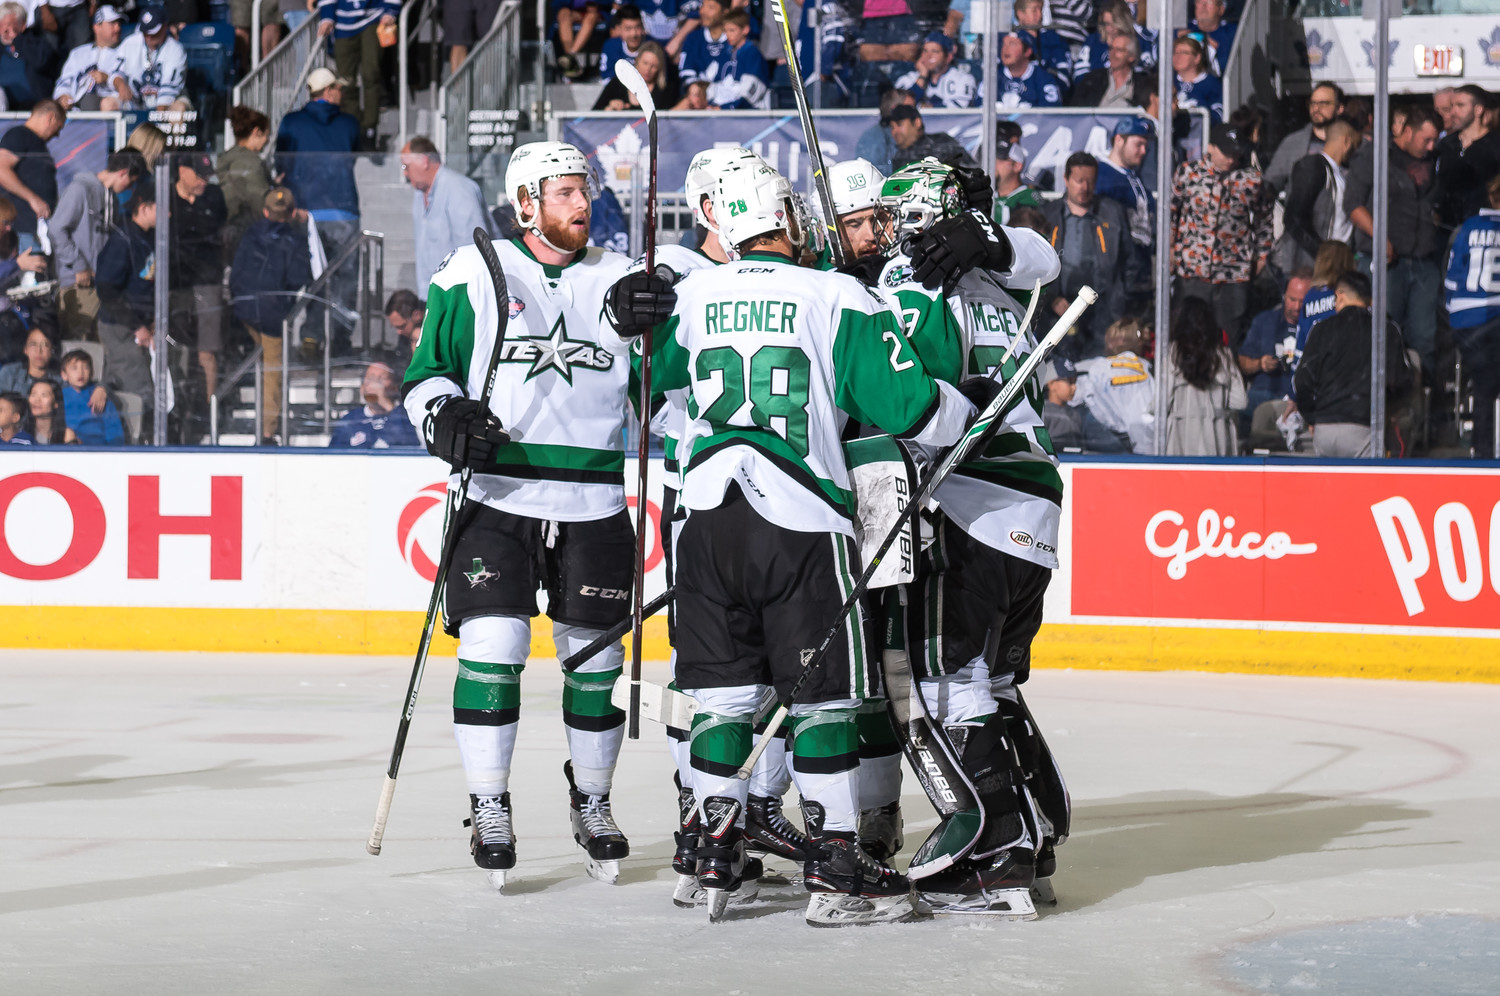 The Stars beat the Toronto Marlies 2-1 in Game 2 of the Calder Cup Finals. The best-of-seven series is tied 1-1 and shifts to Texas beginning Tuesday at 7 p.m.